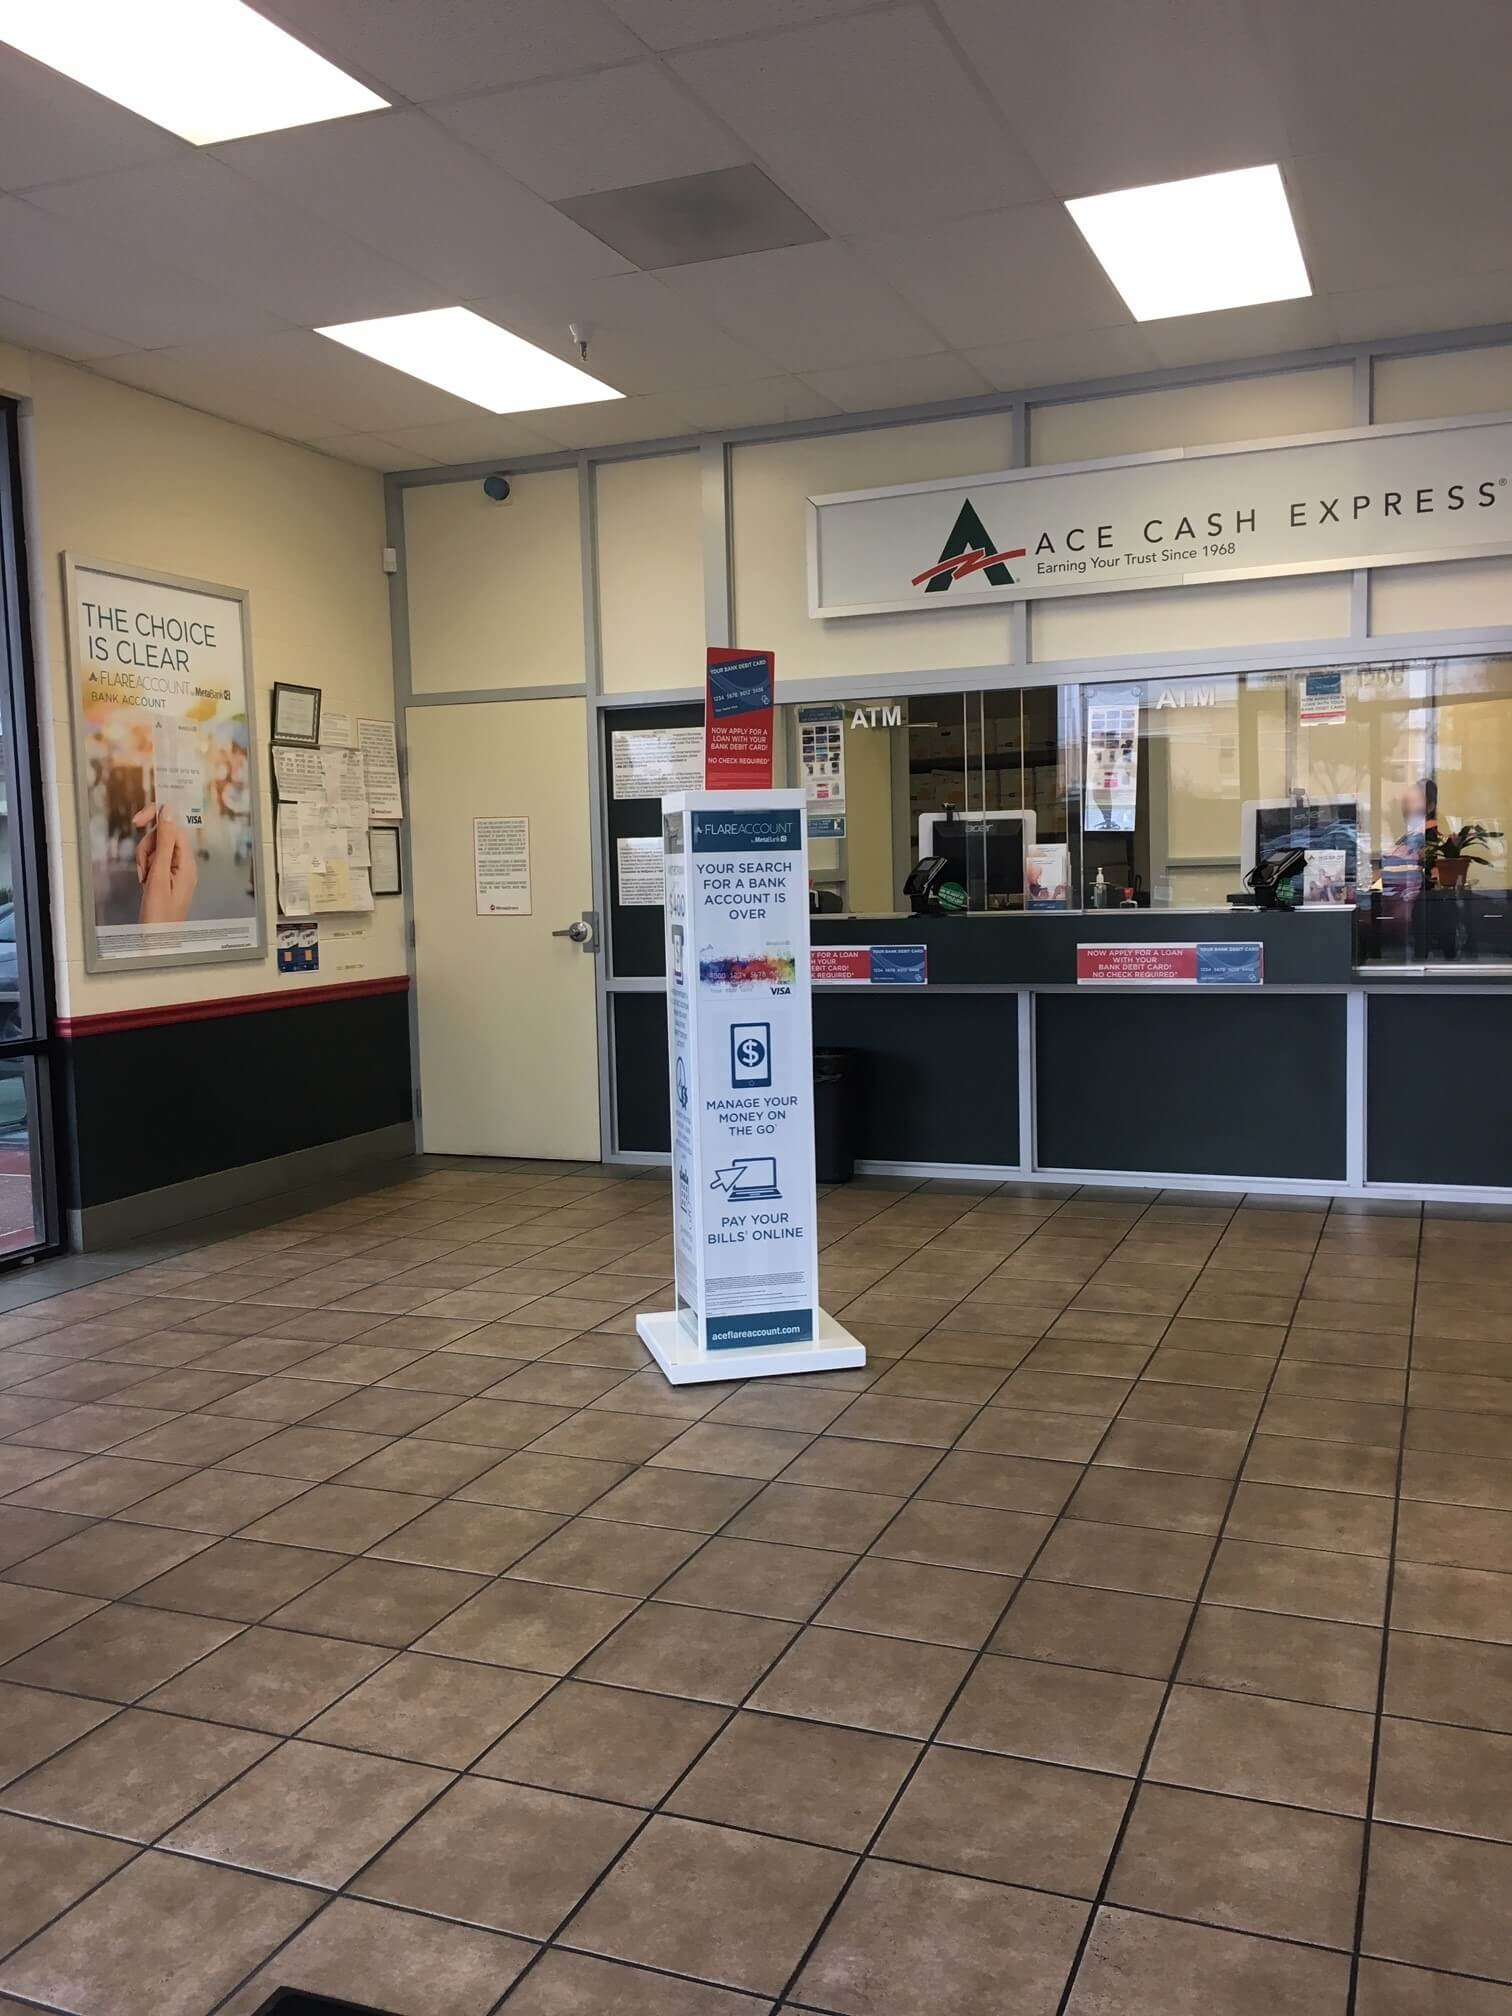 LoanMart Title Loans at ACE Cash Express image 2